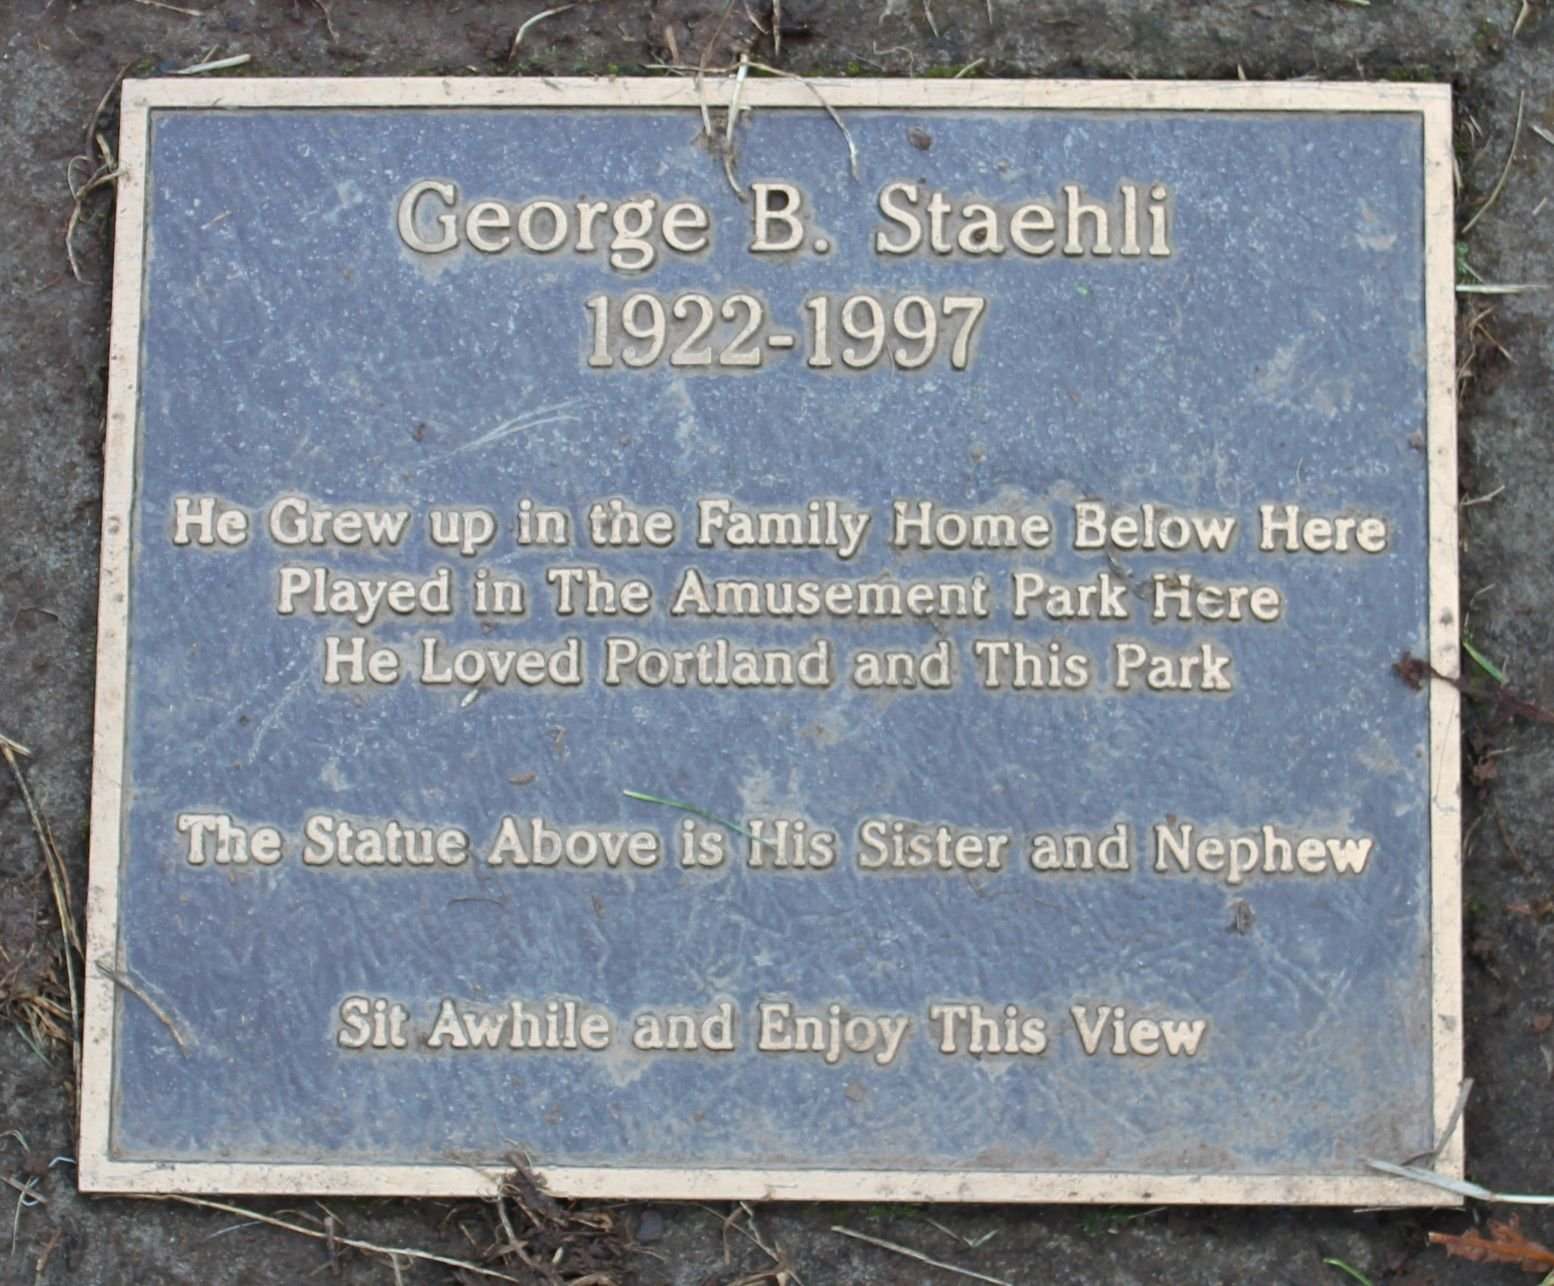 George B. Staehli plaque placed near fountain. Photo by Cynthia Prescott.